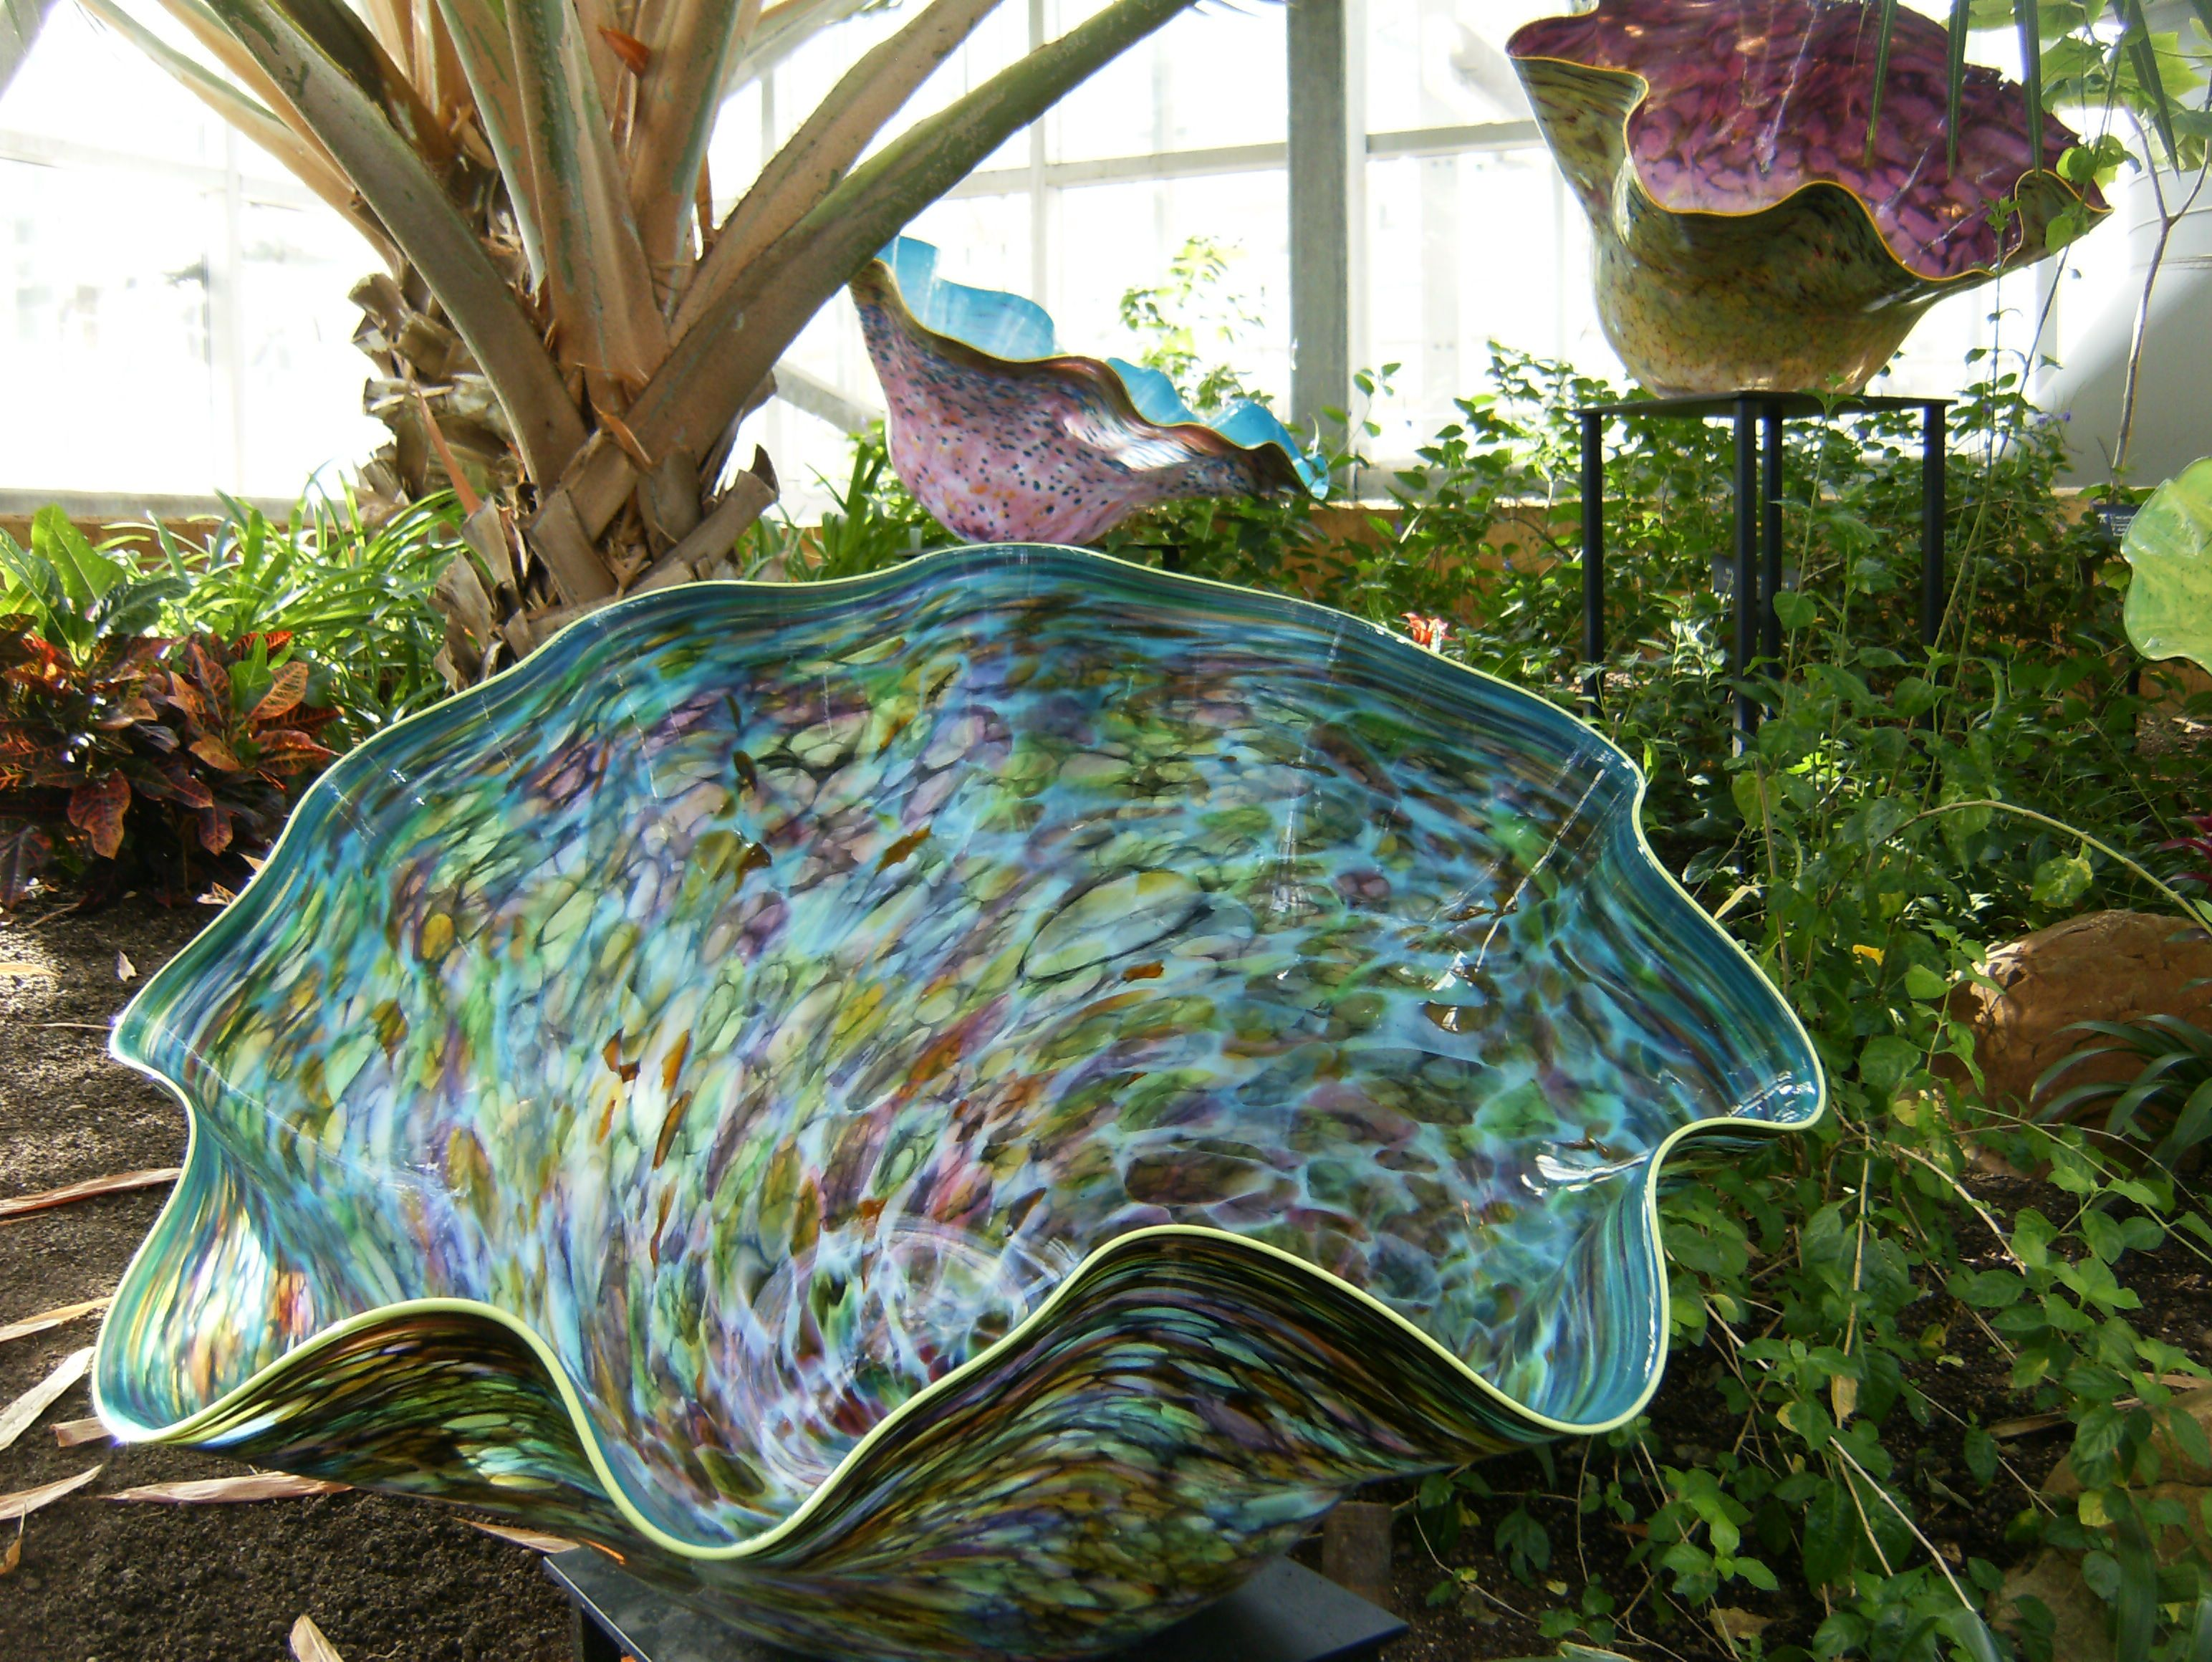 At meijer gardens near grand rapids michigan for the